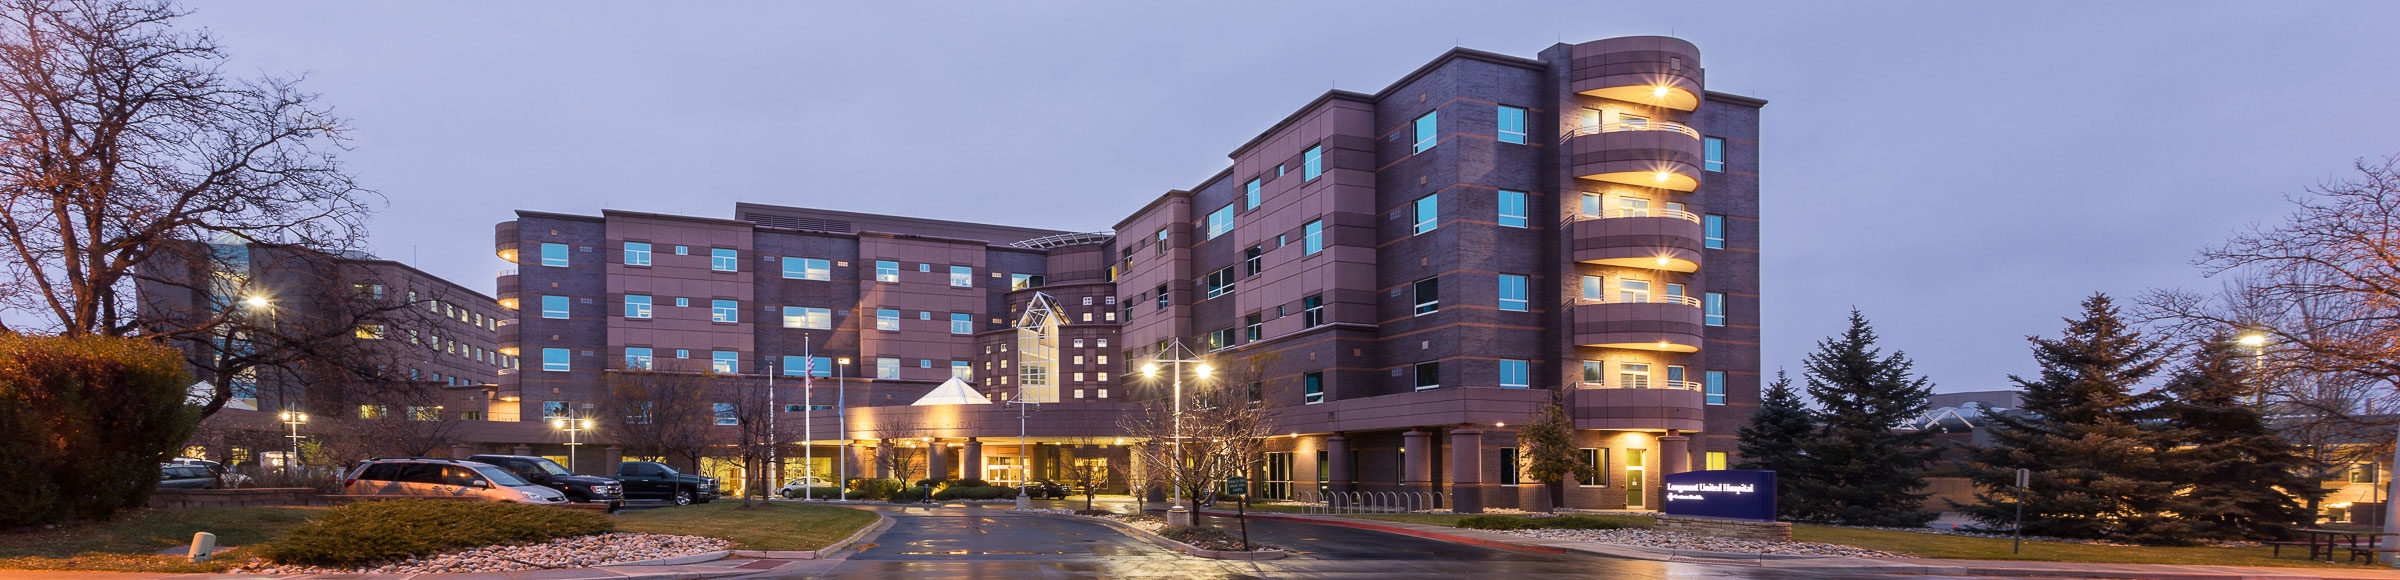 Longmont United Hospital building